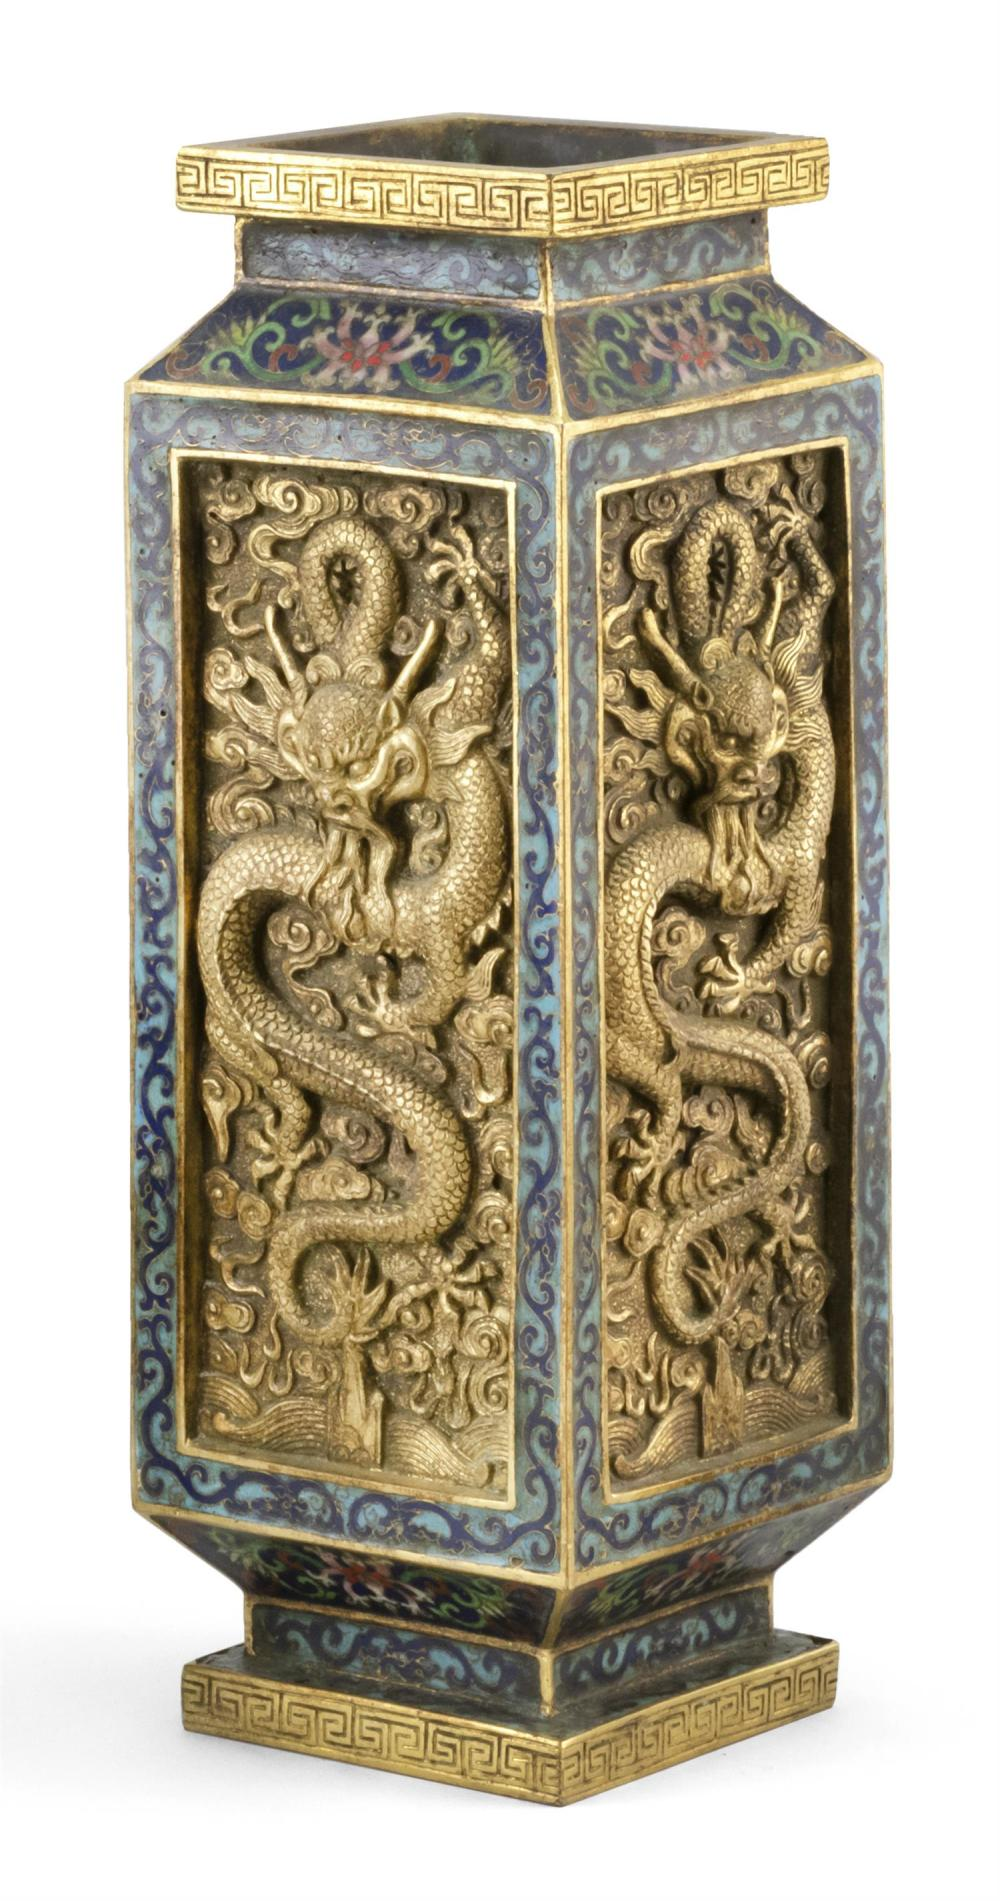 Lot 908: CHINESE GILT-BRONZE AND CLOISONNÉ ENAMEL VASE Rectangular, with gilt five-clawed dragon panels on a blue flower and vine ground. Fou...